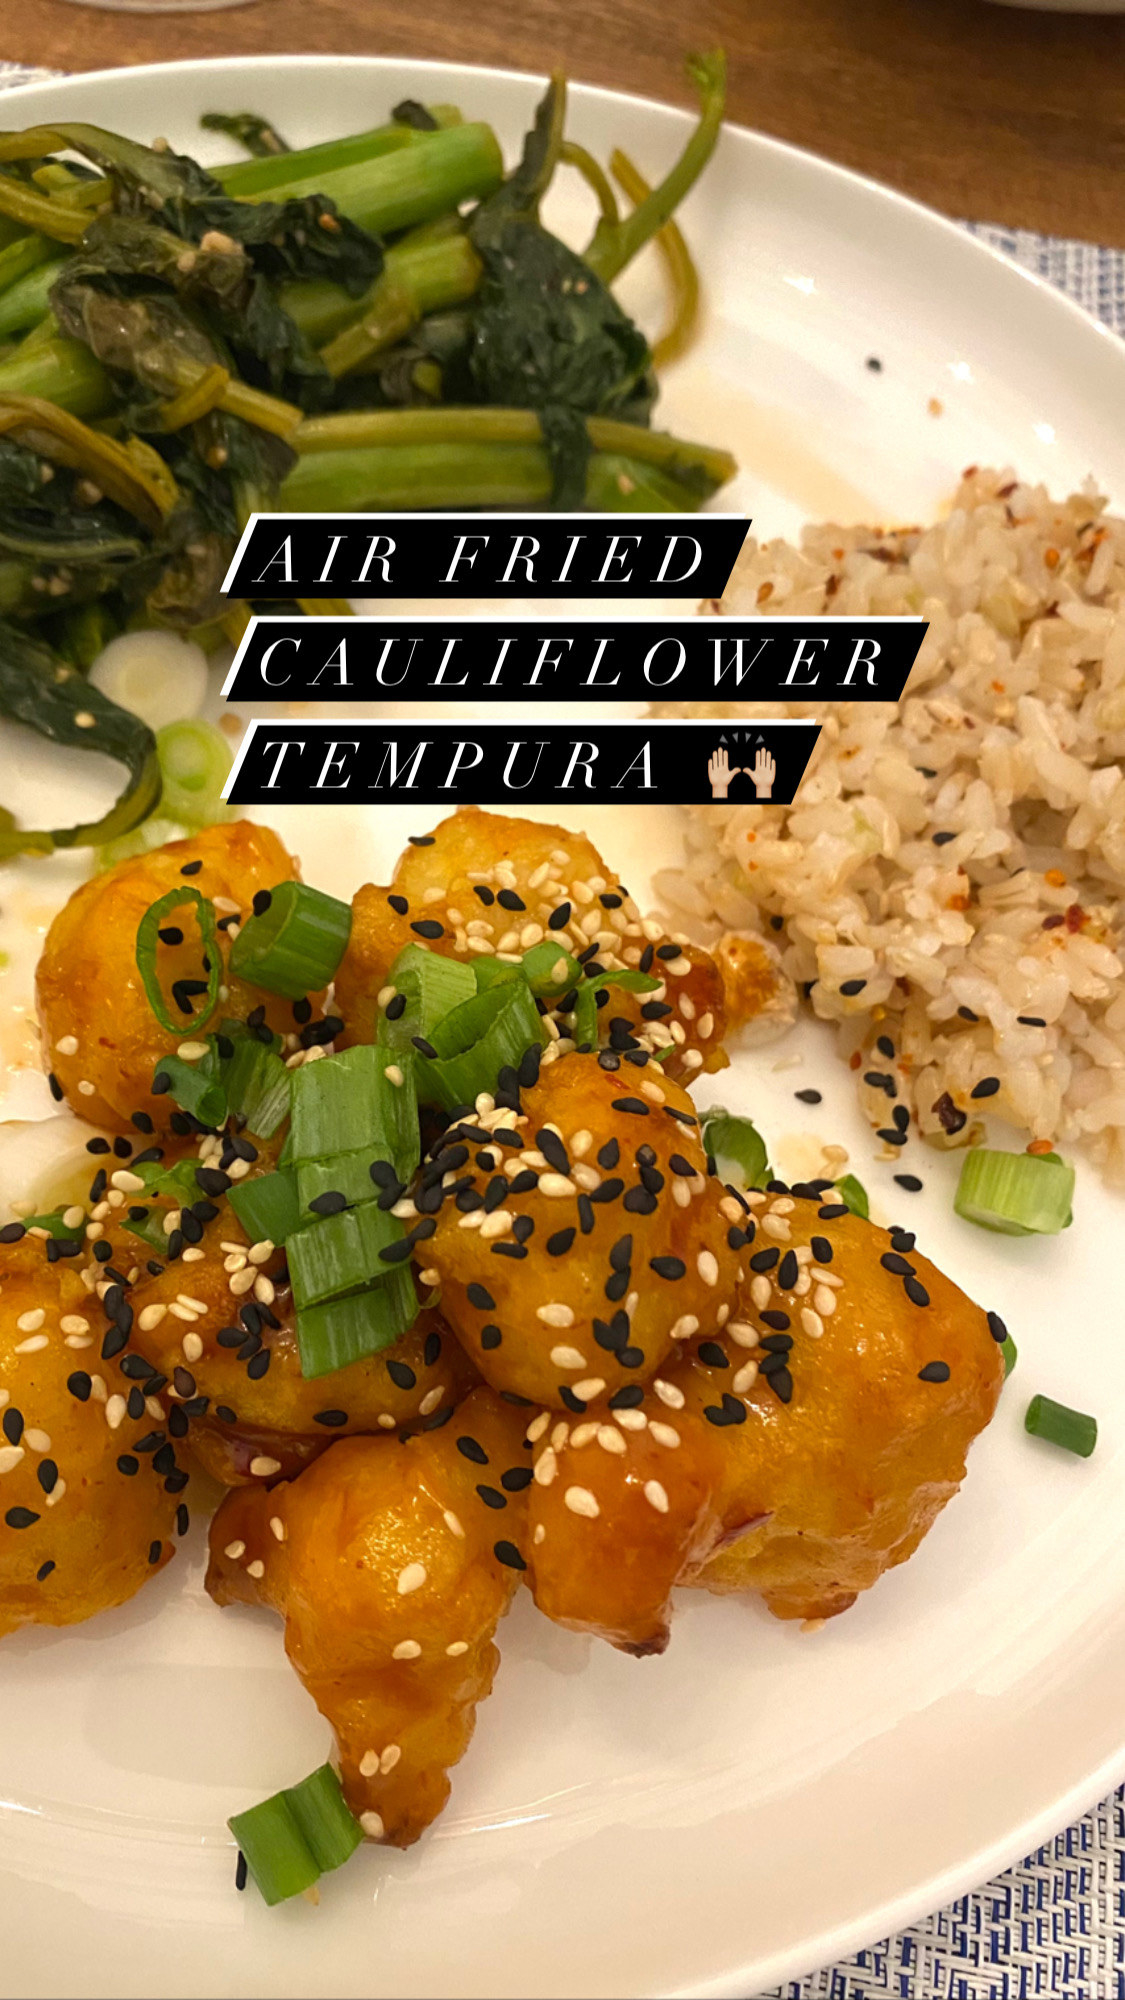 Air-fried cauliflower tempura with rice and greens.